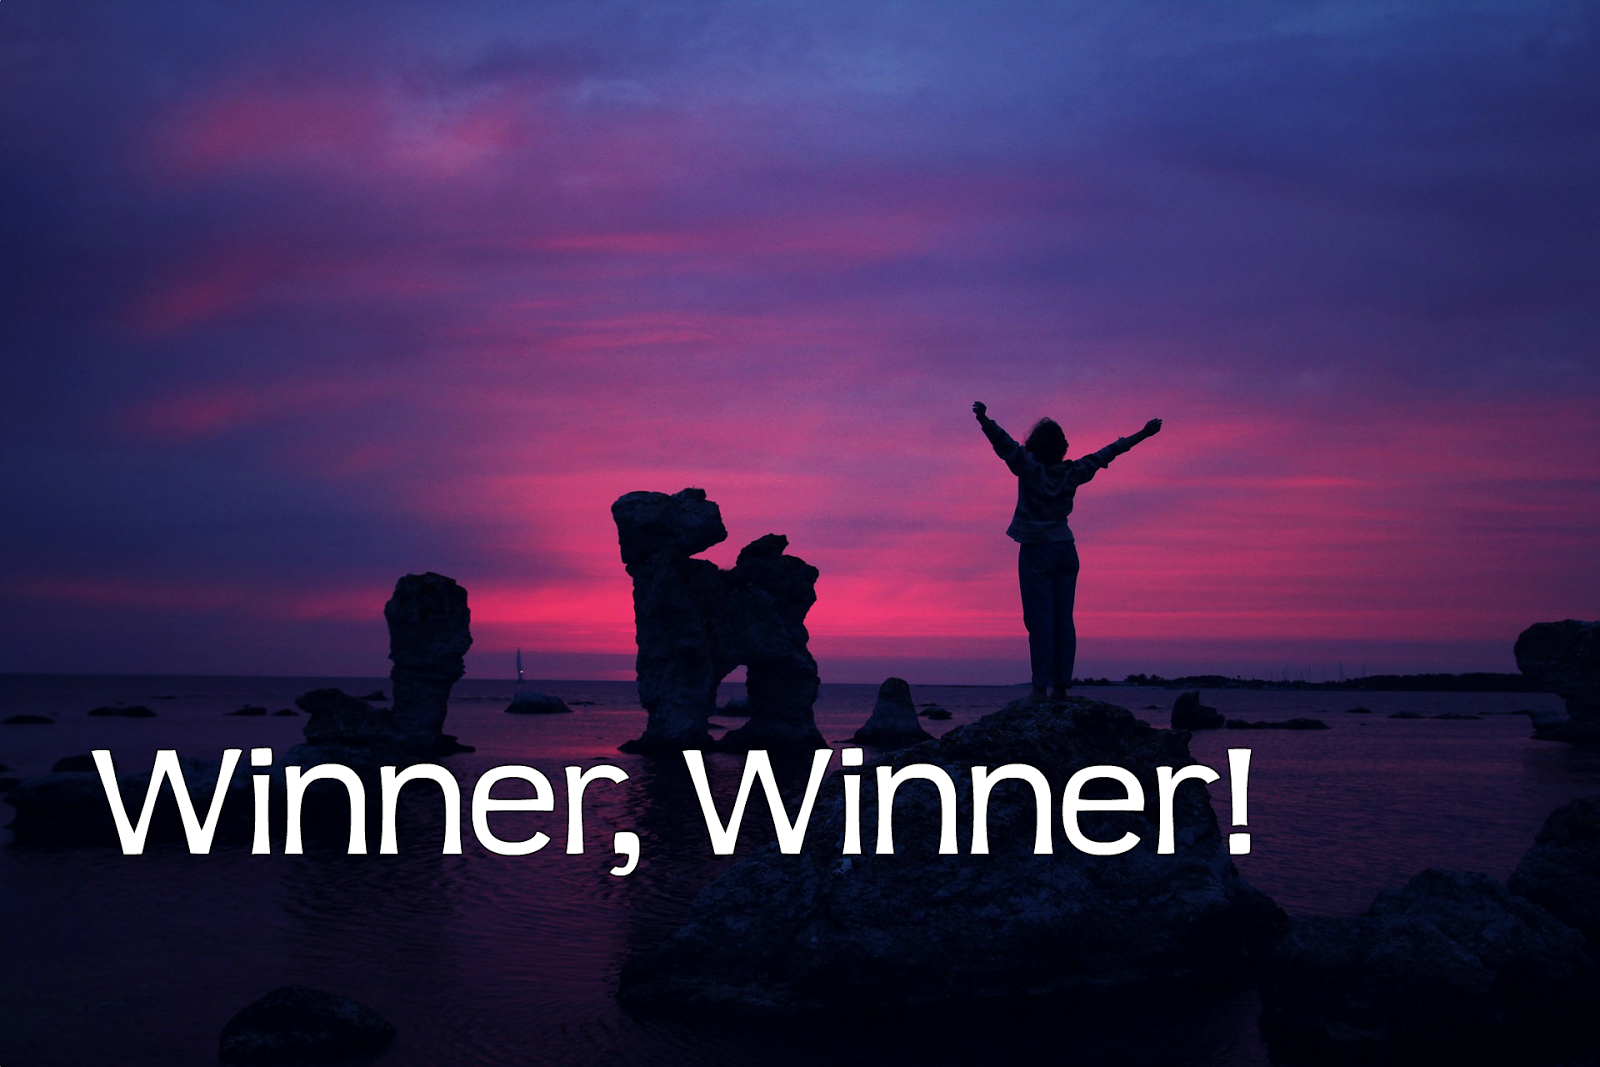 Check Out This Awesome Winner Winner Chicken Dinner: Meeshie's World